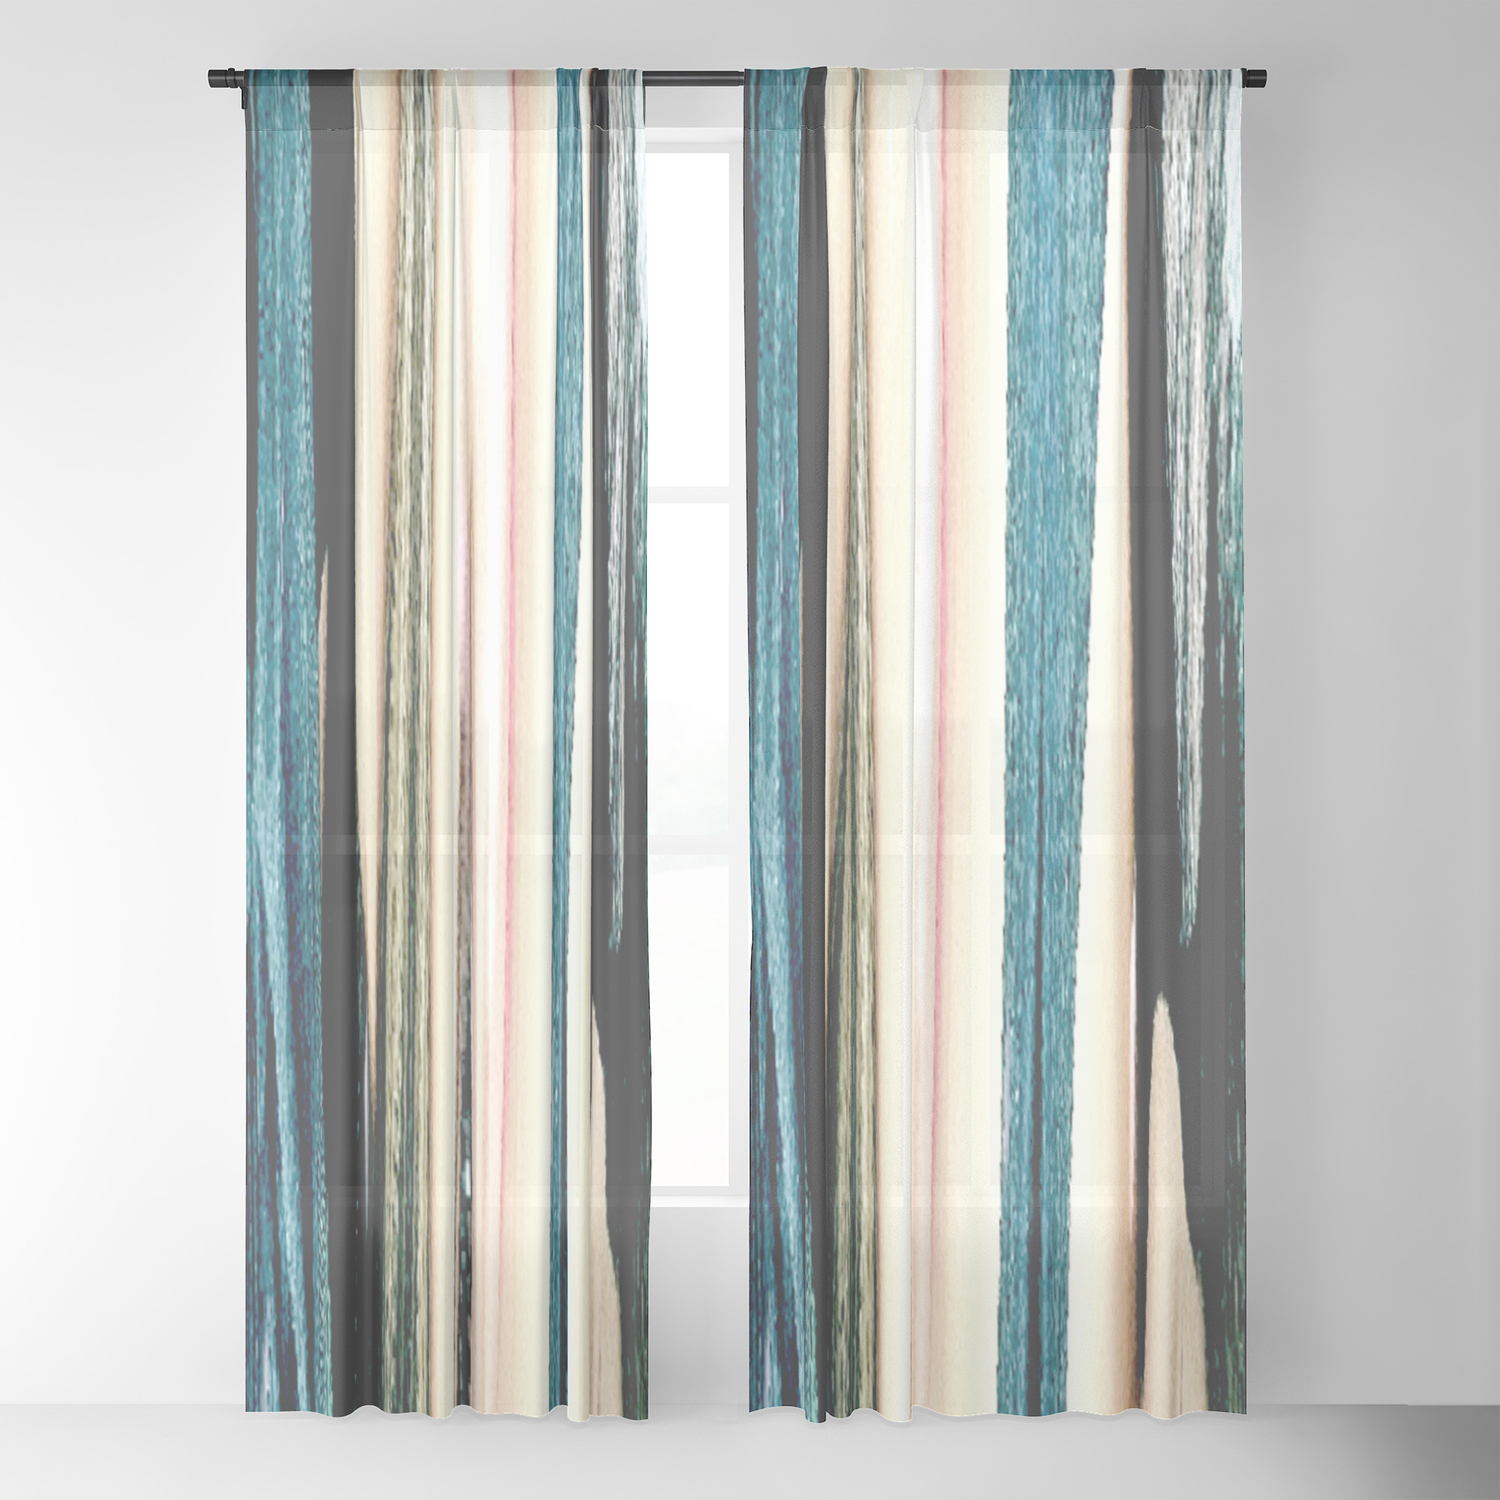 Blue Turquoise Black Grey Beige Pink Abstract Striped Pattern Sheer Curtain By Katerina Ez